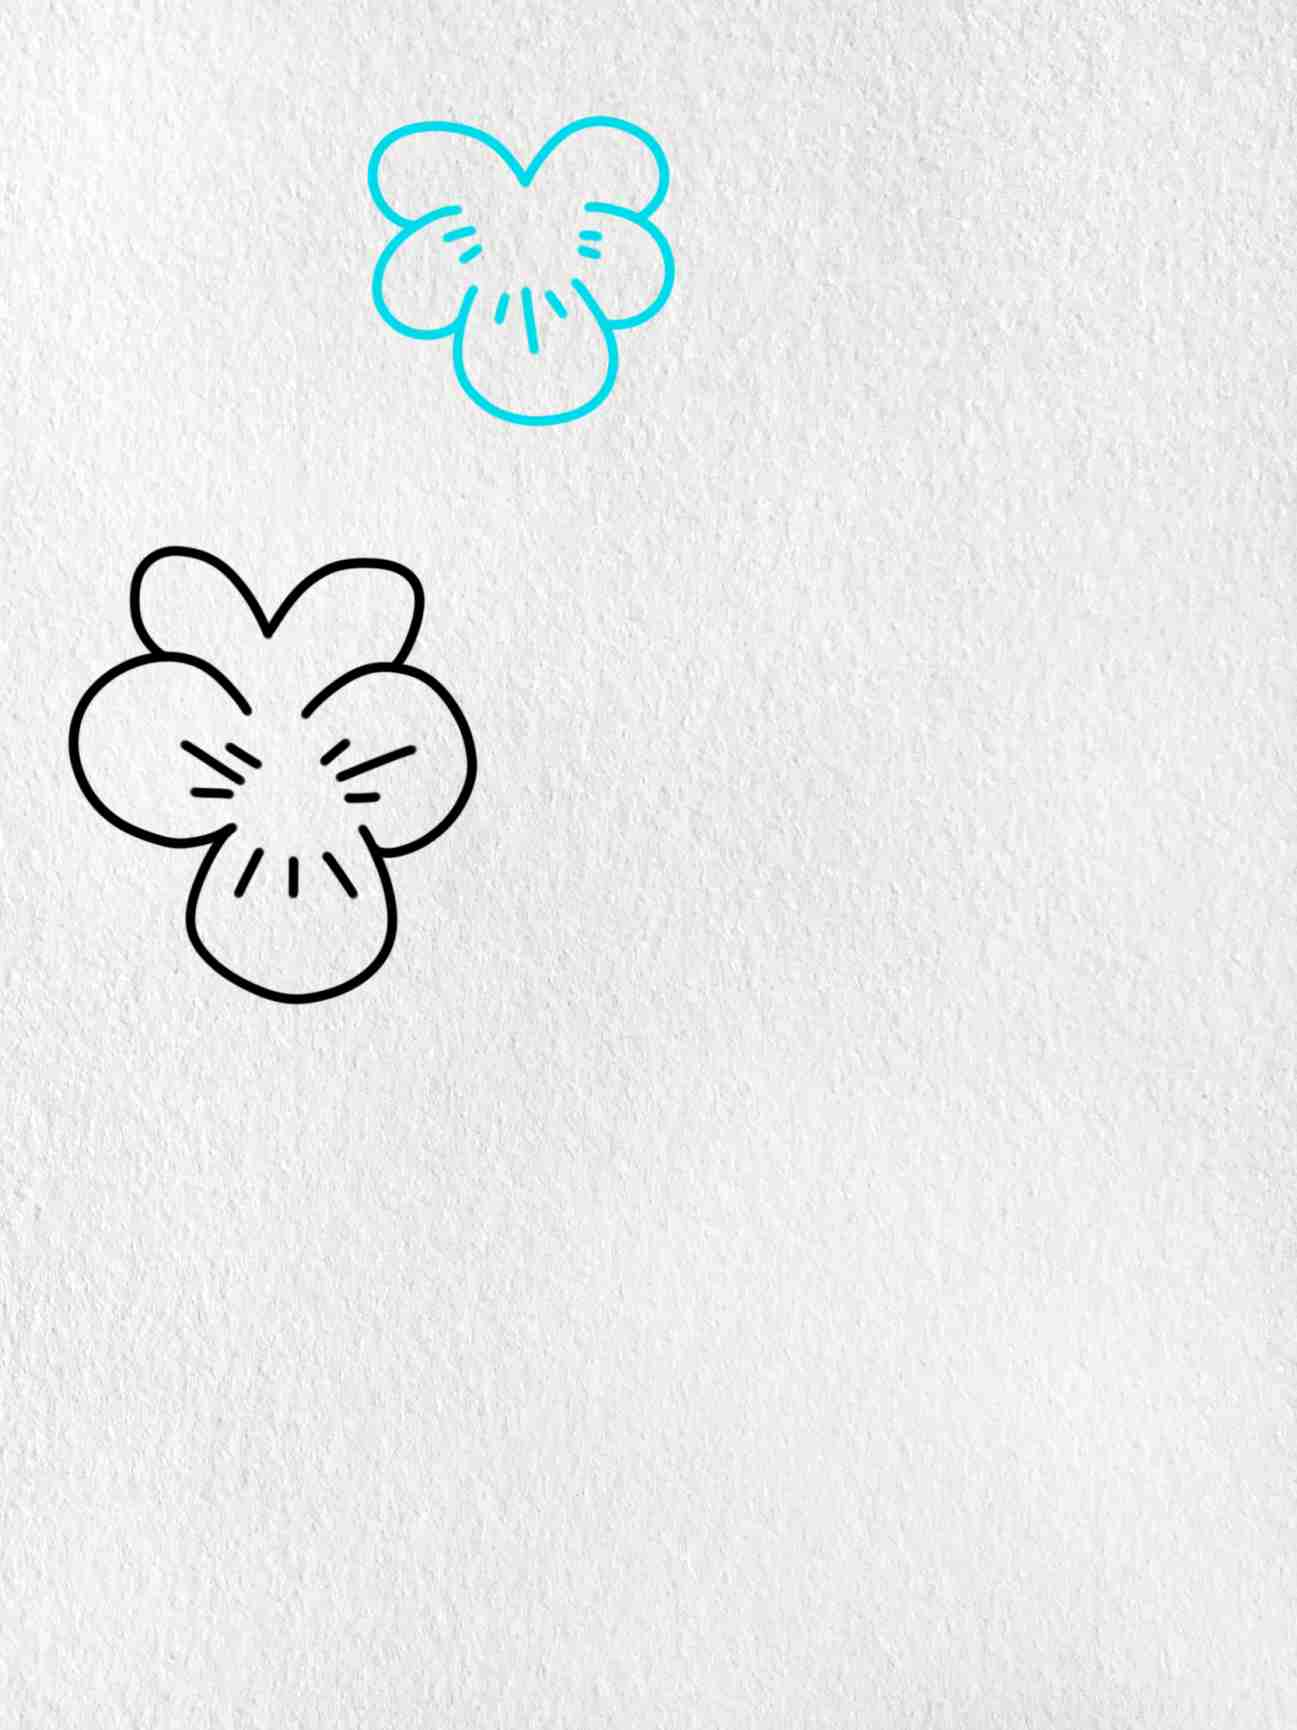 How To Draw A Violet: Step 2